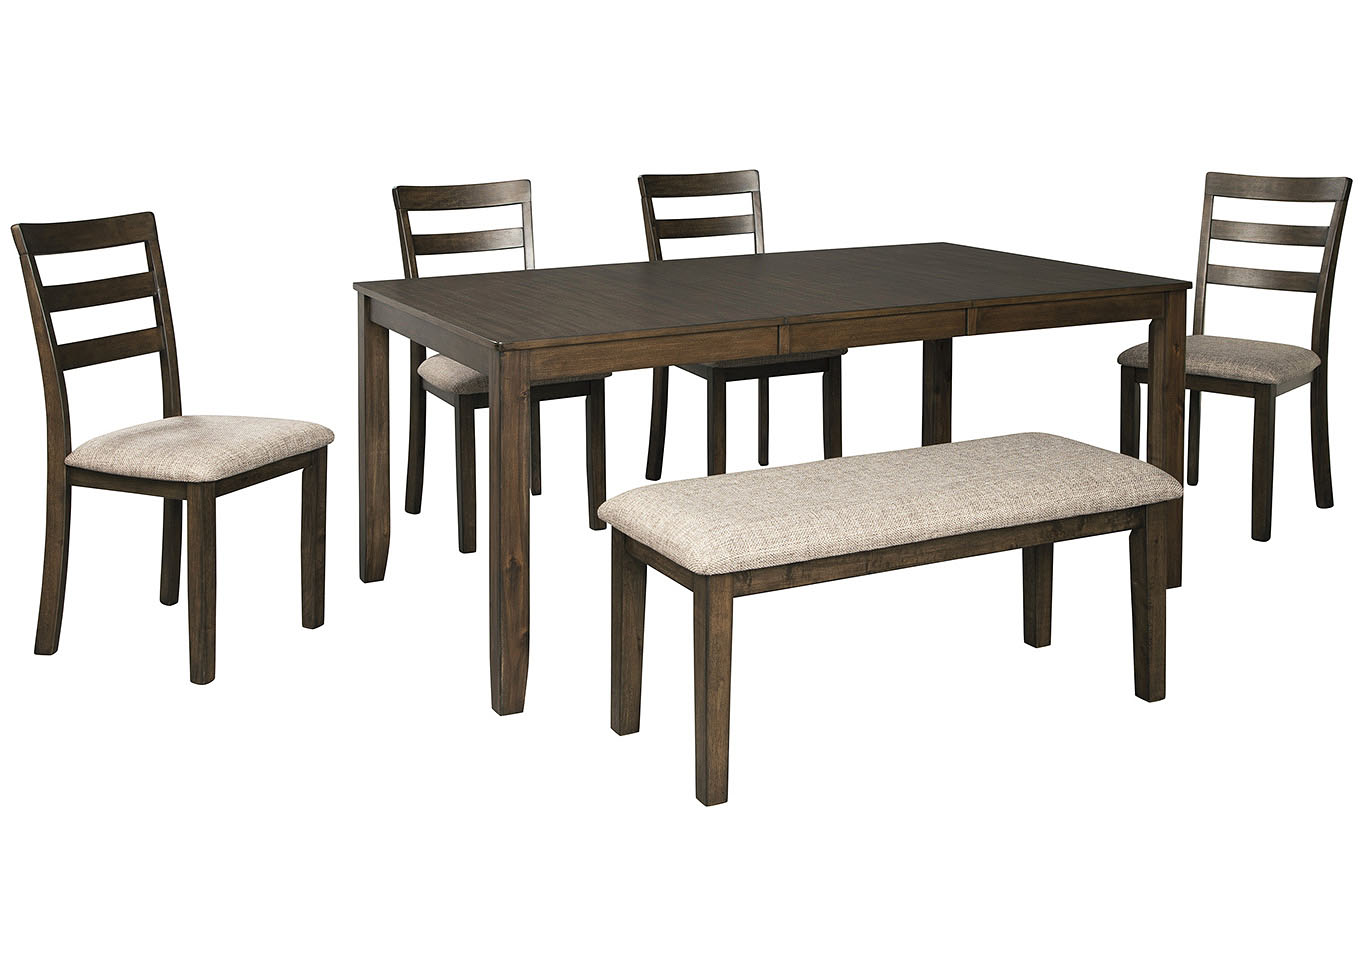 Drewing Dining Room Table w/4 Side Chairs & Bench,Benchcraft